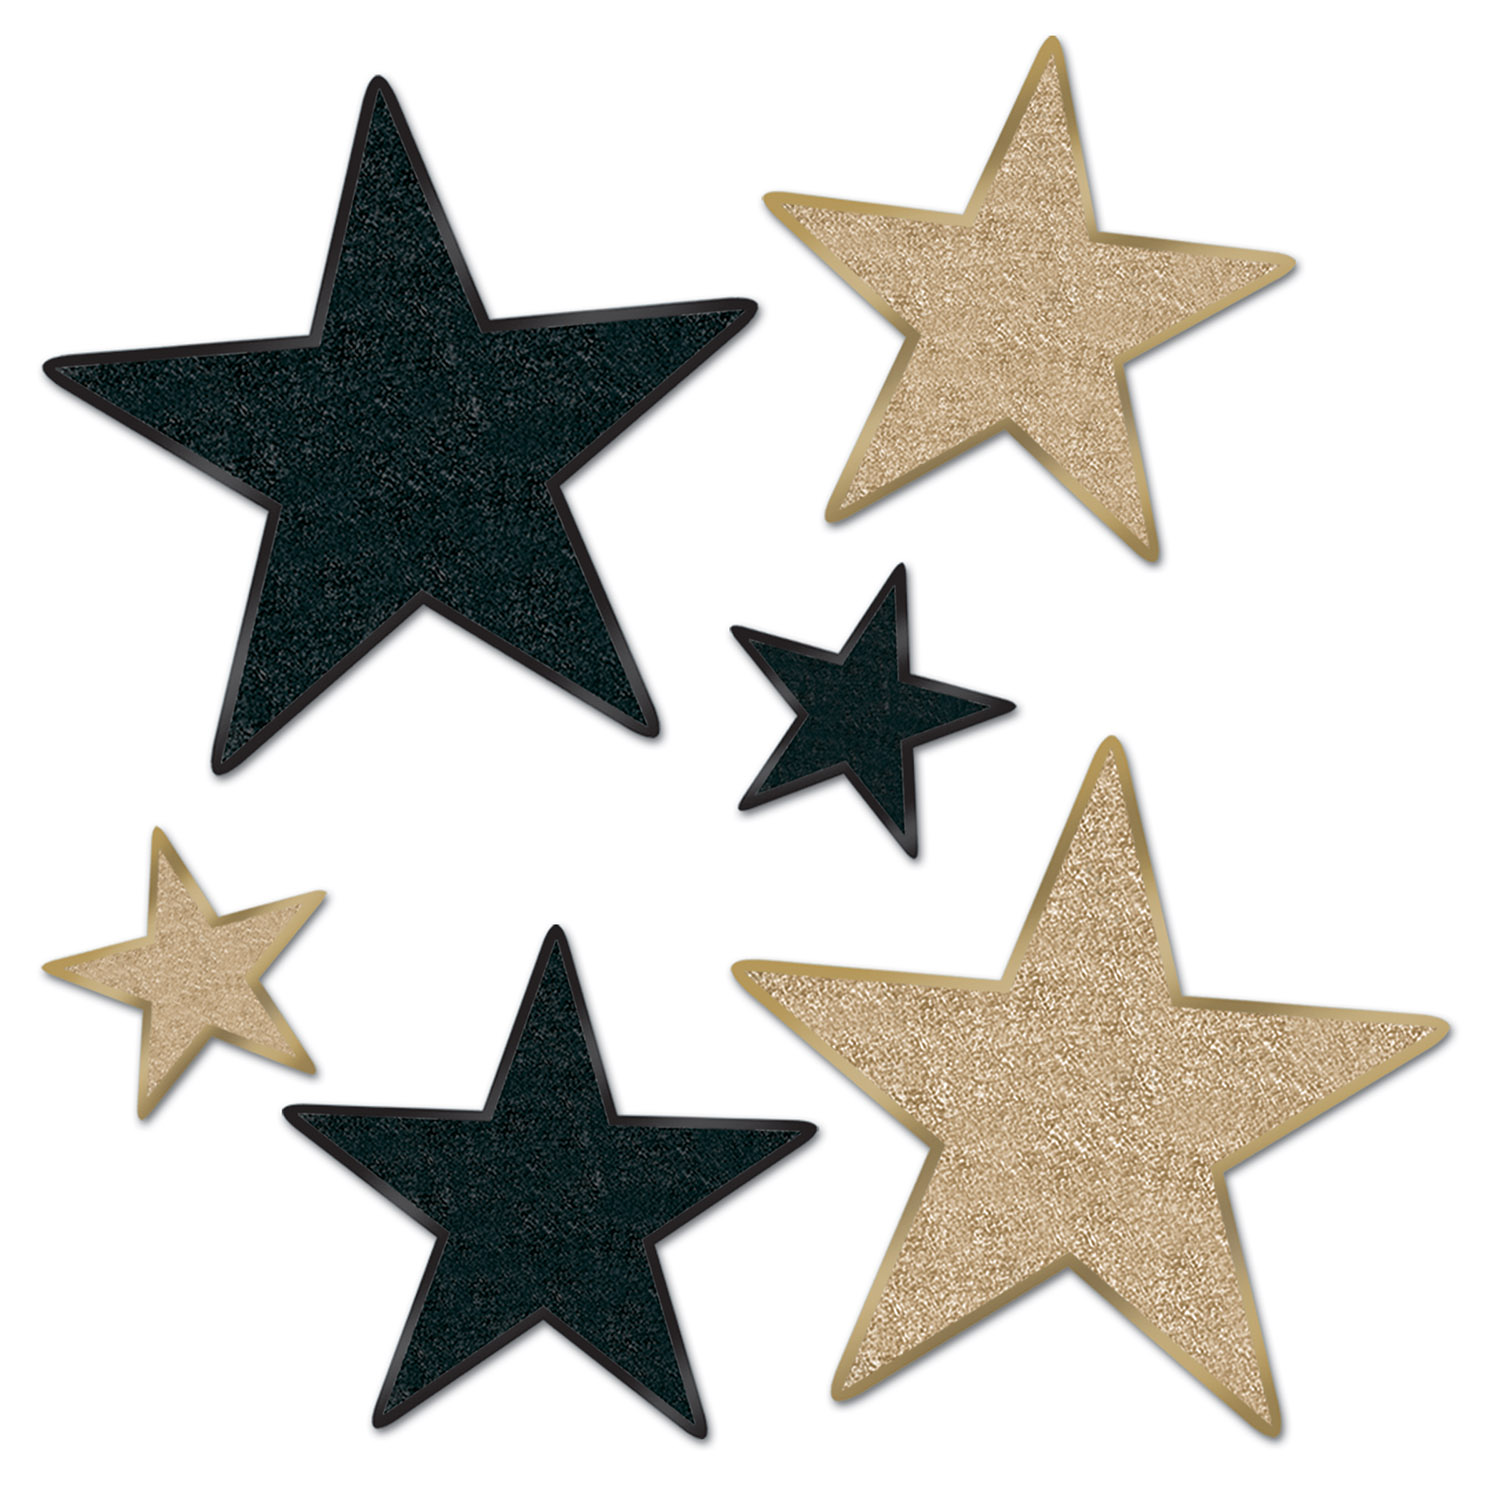 Glittered Star Cutouts (Pack of 72) glittered, star, cutouts, decorations, table, hanging, wall, party, pack, black, silver, gold